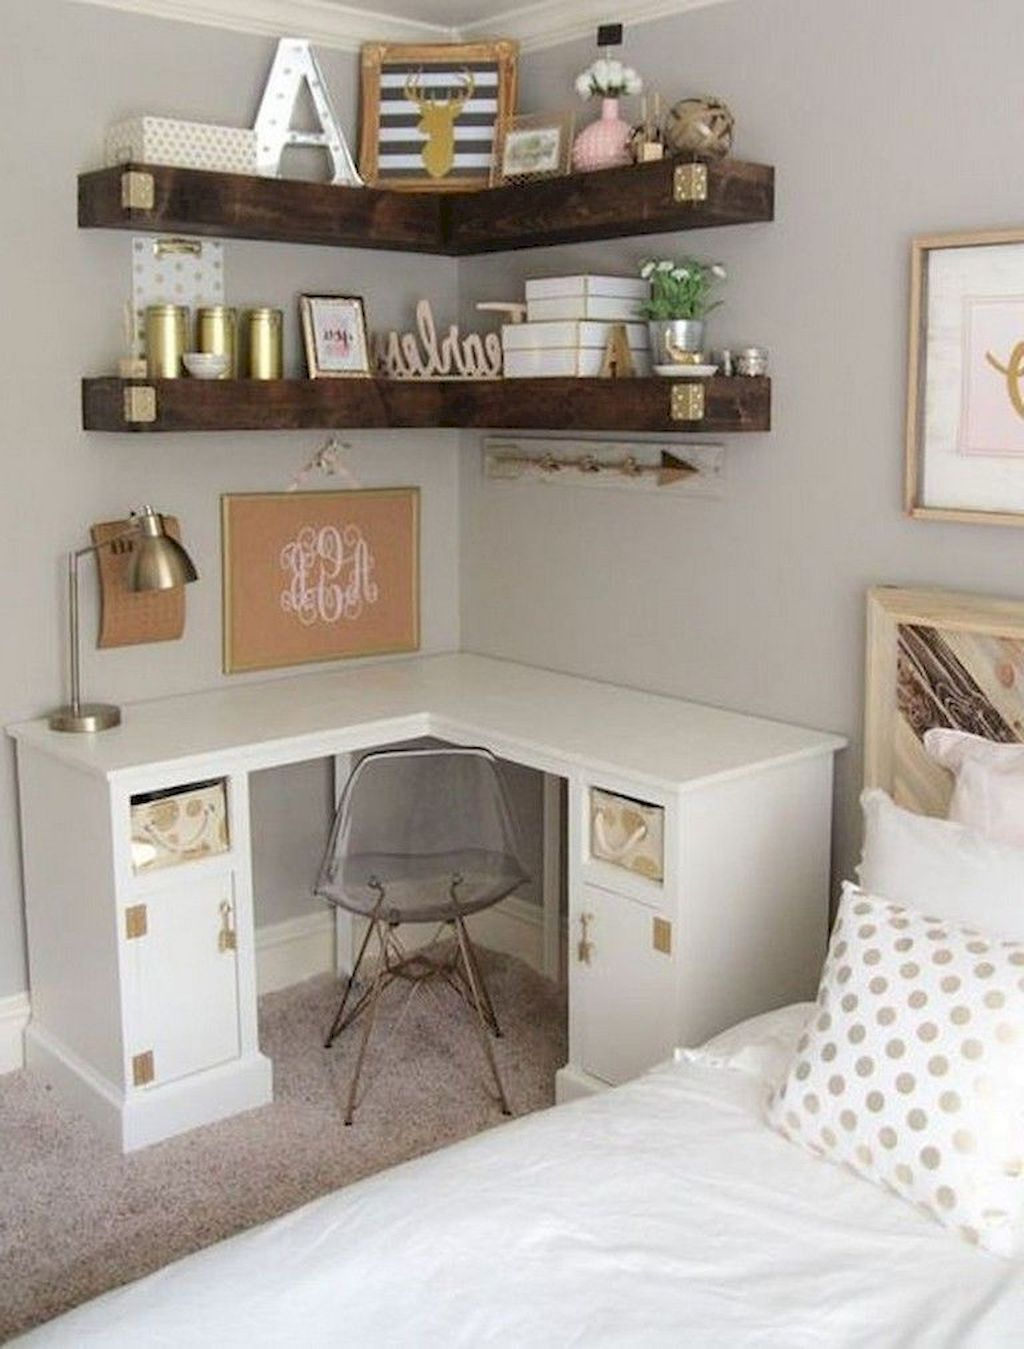 65 First Apartment Decorating Ideas On A Budget First Apartment